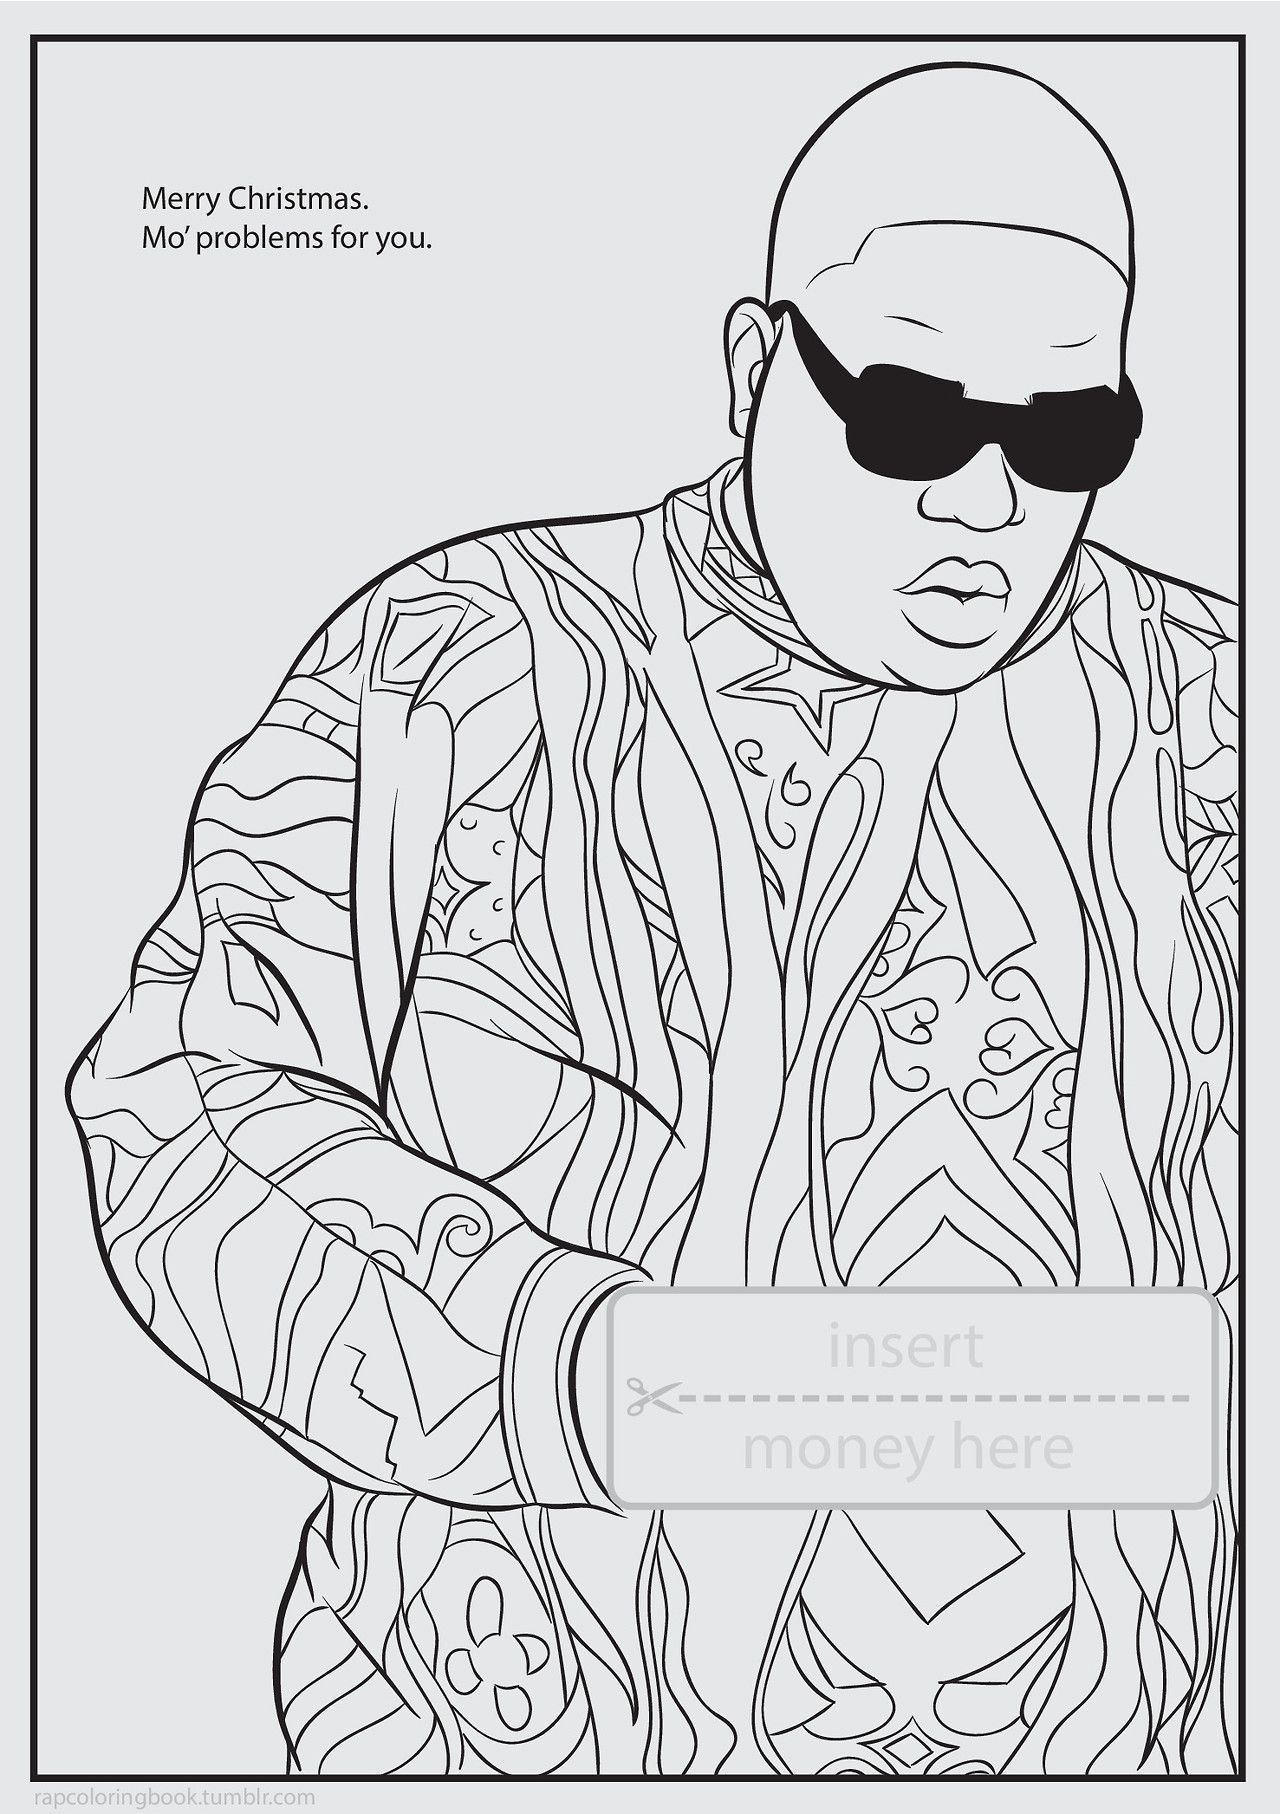 Grab Your New Coloring Pages Rappers Download Http Gethighit Com New Coloring Pages Rappers Download Che Coloring Books Coloring Pages Coloring Book Pages